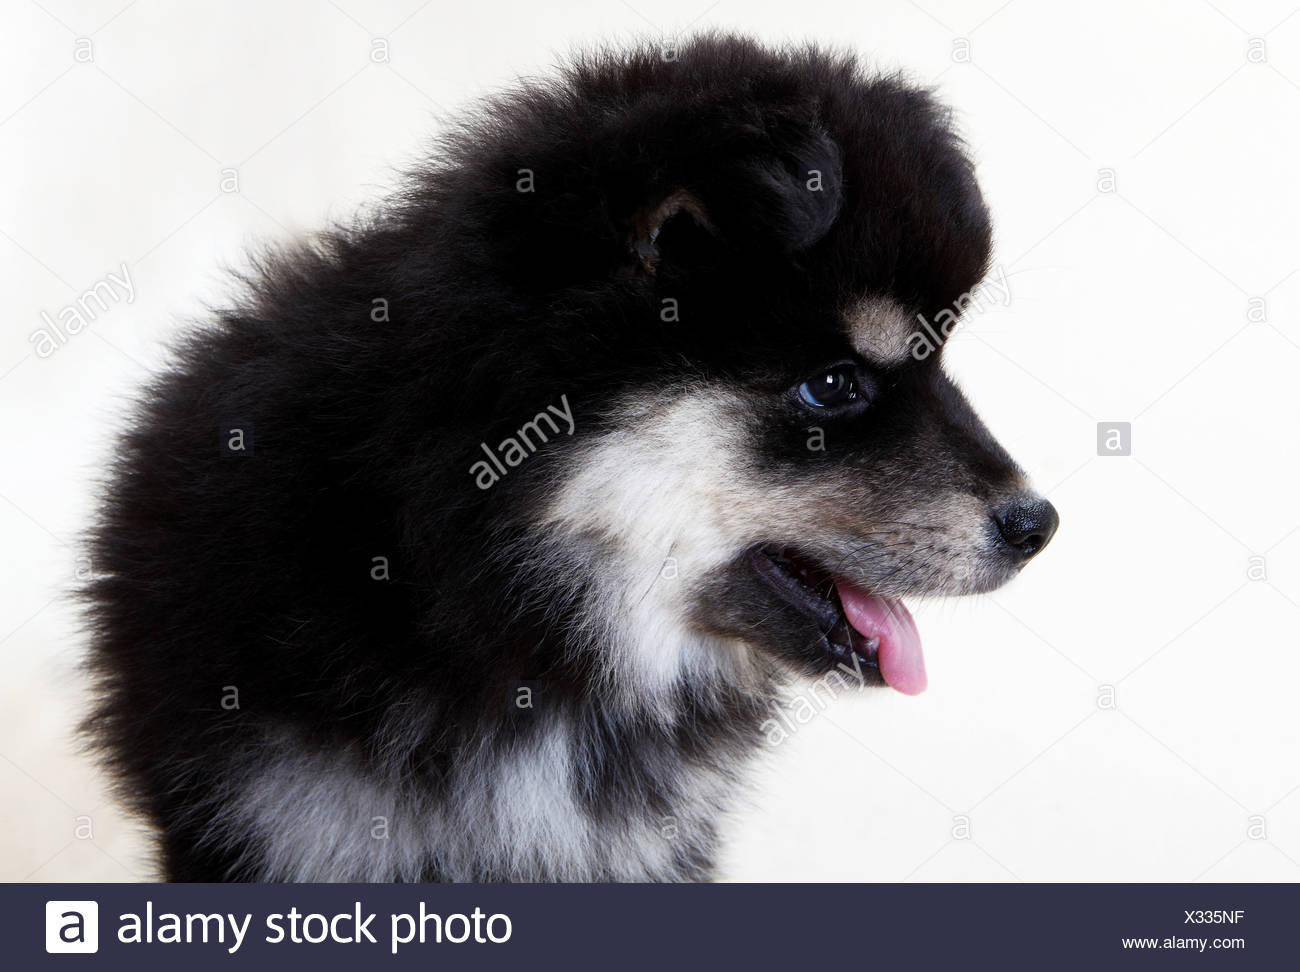 A Finnish Lapphund puppy - Stock Image